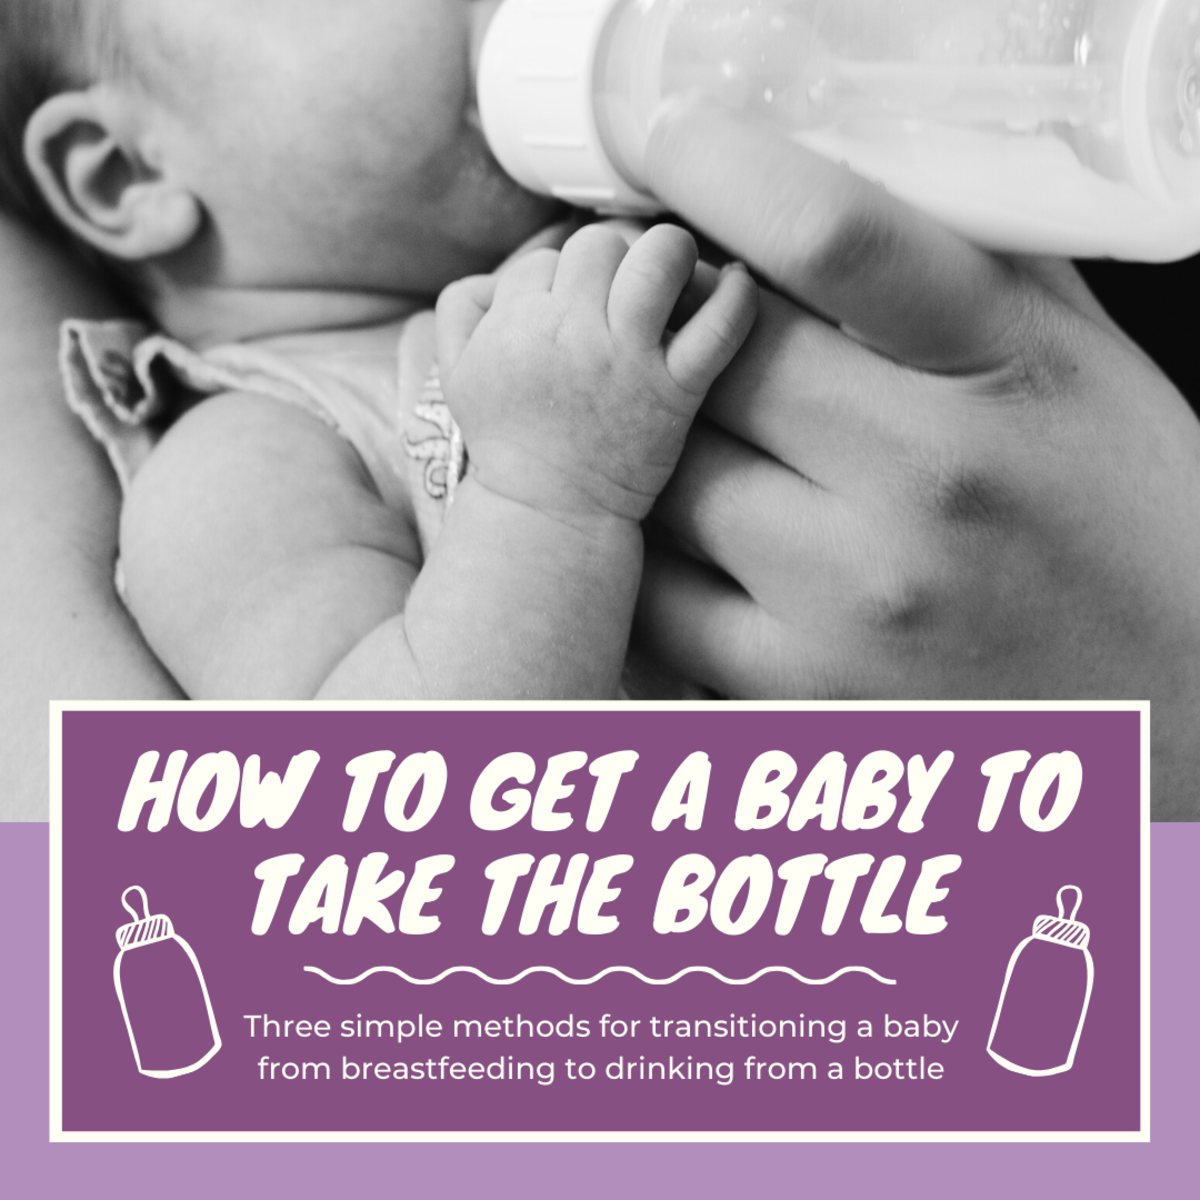 This guide will provide three different methods to help you transition a baby that is accustomed to breastfeeding to feeding with a bottle.